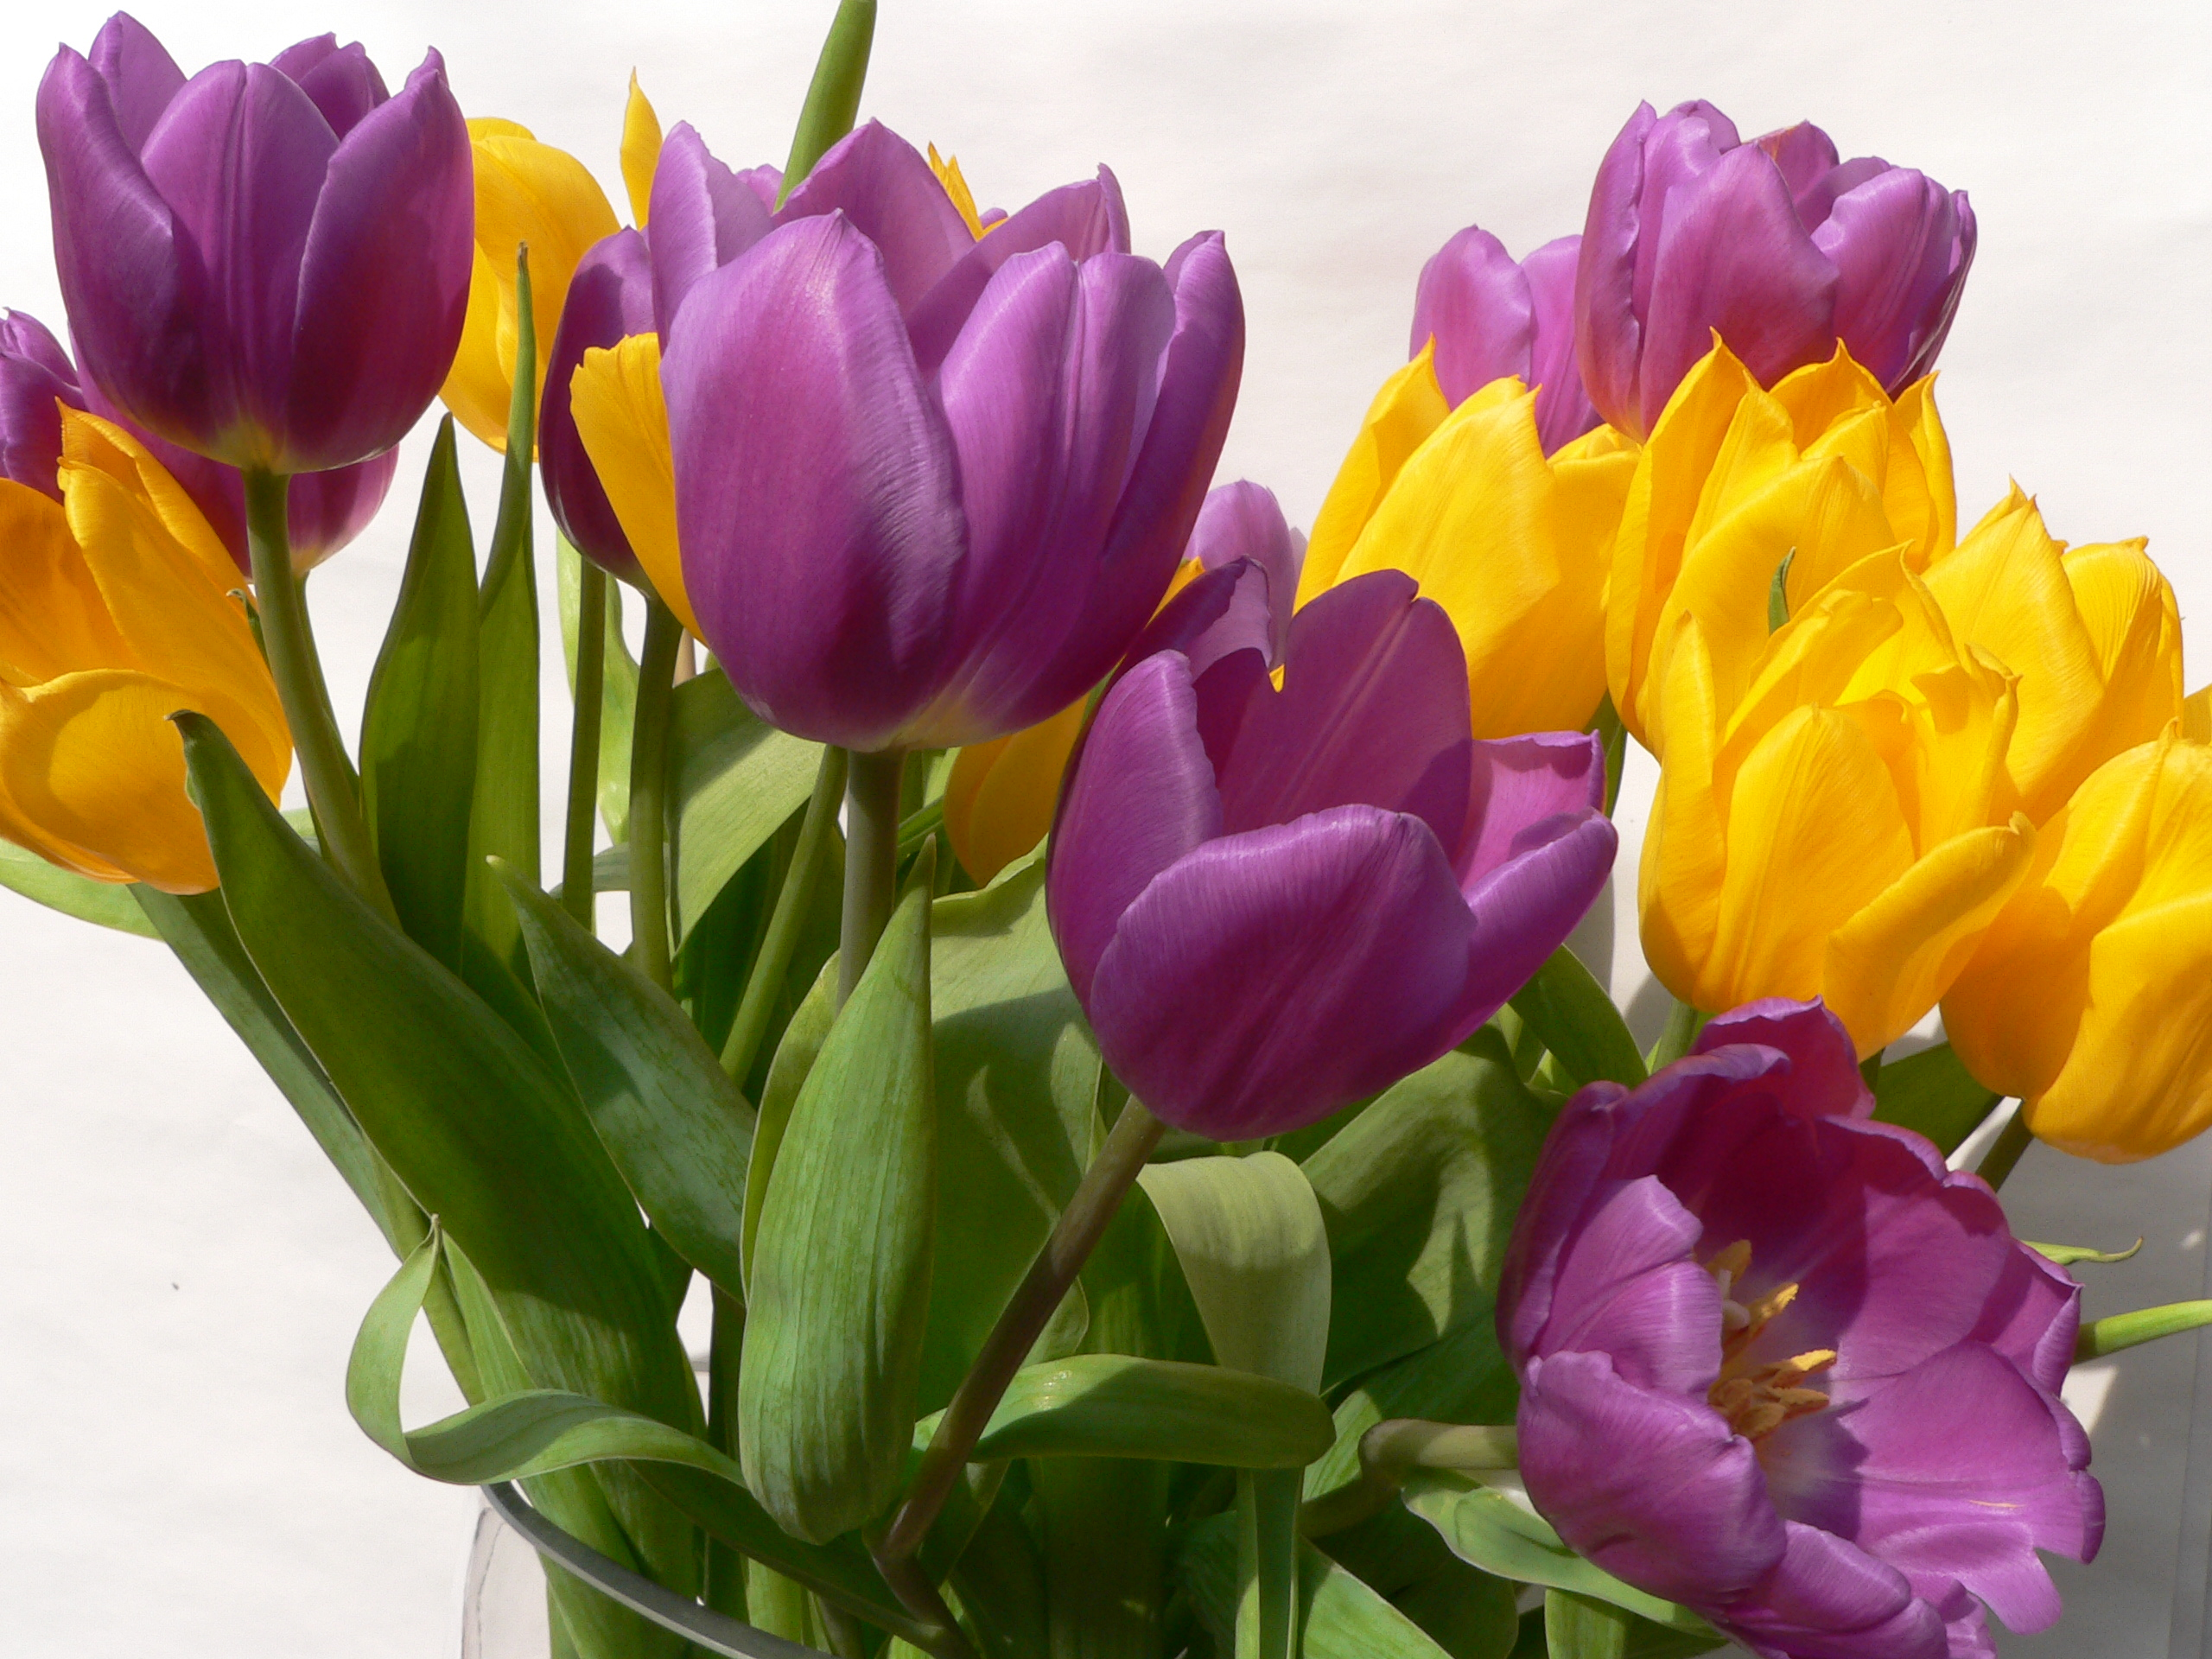 Why is colour important when it comes to floral designs